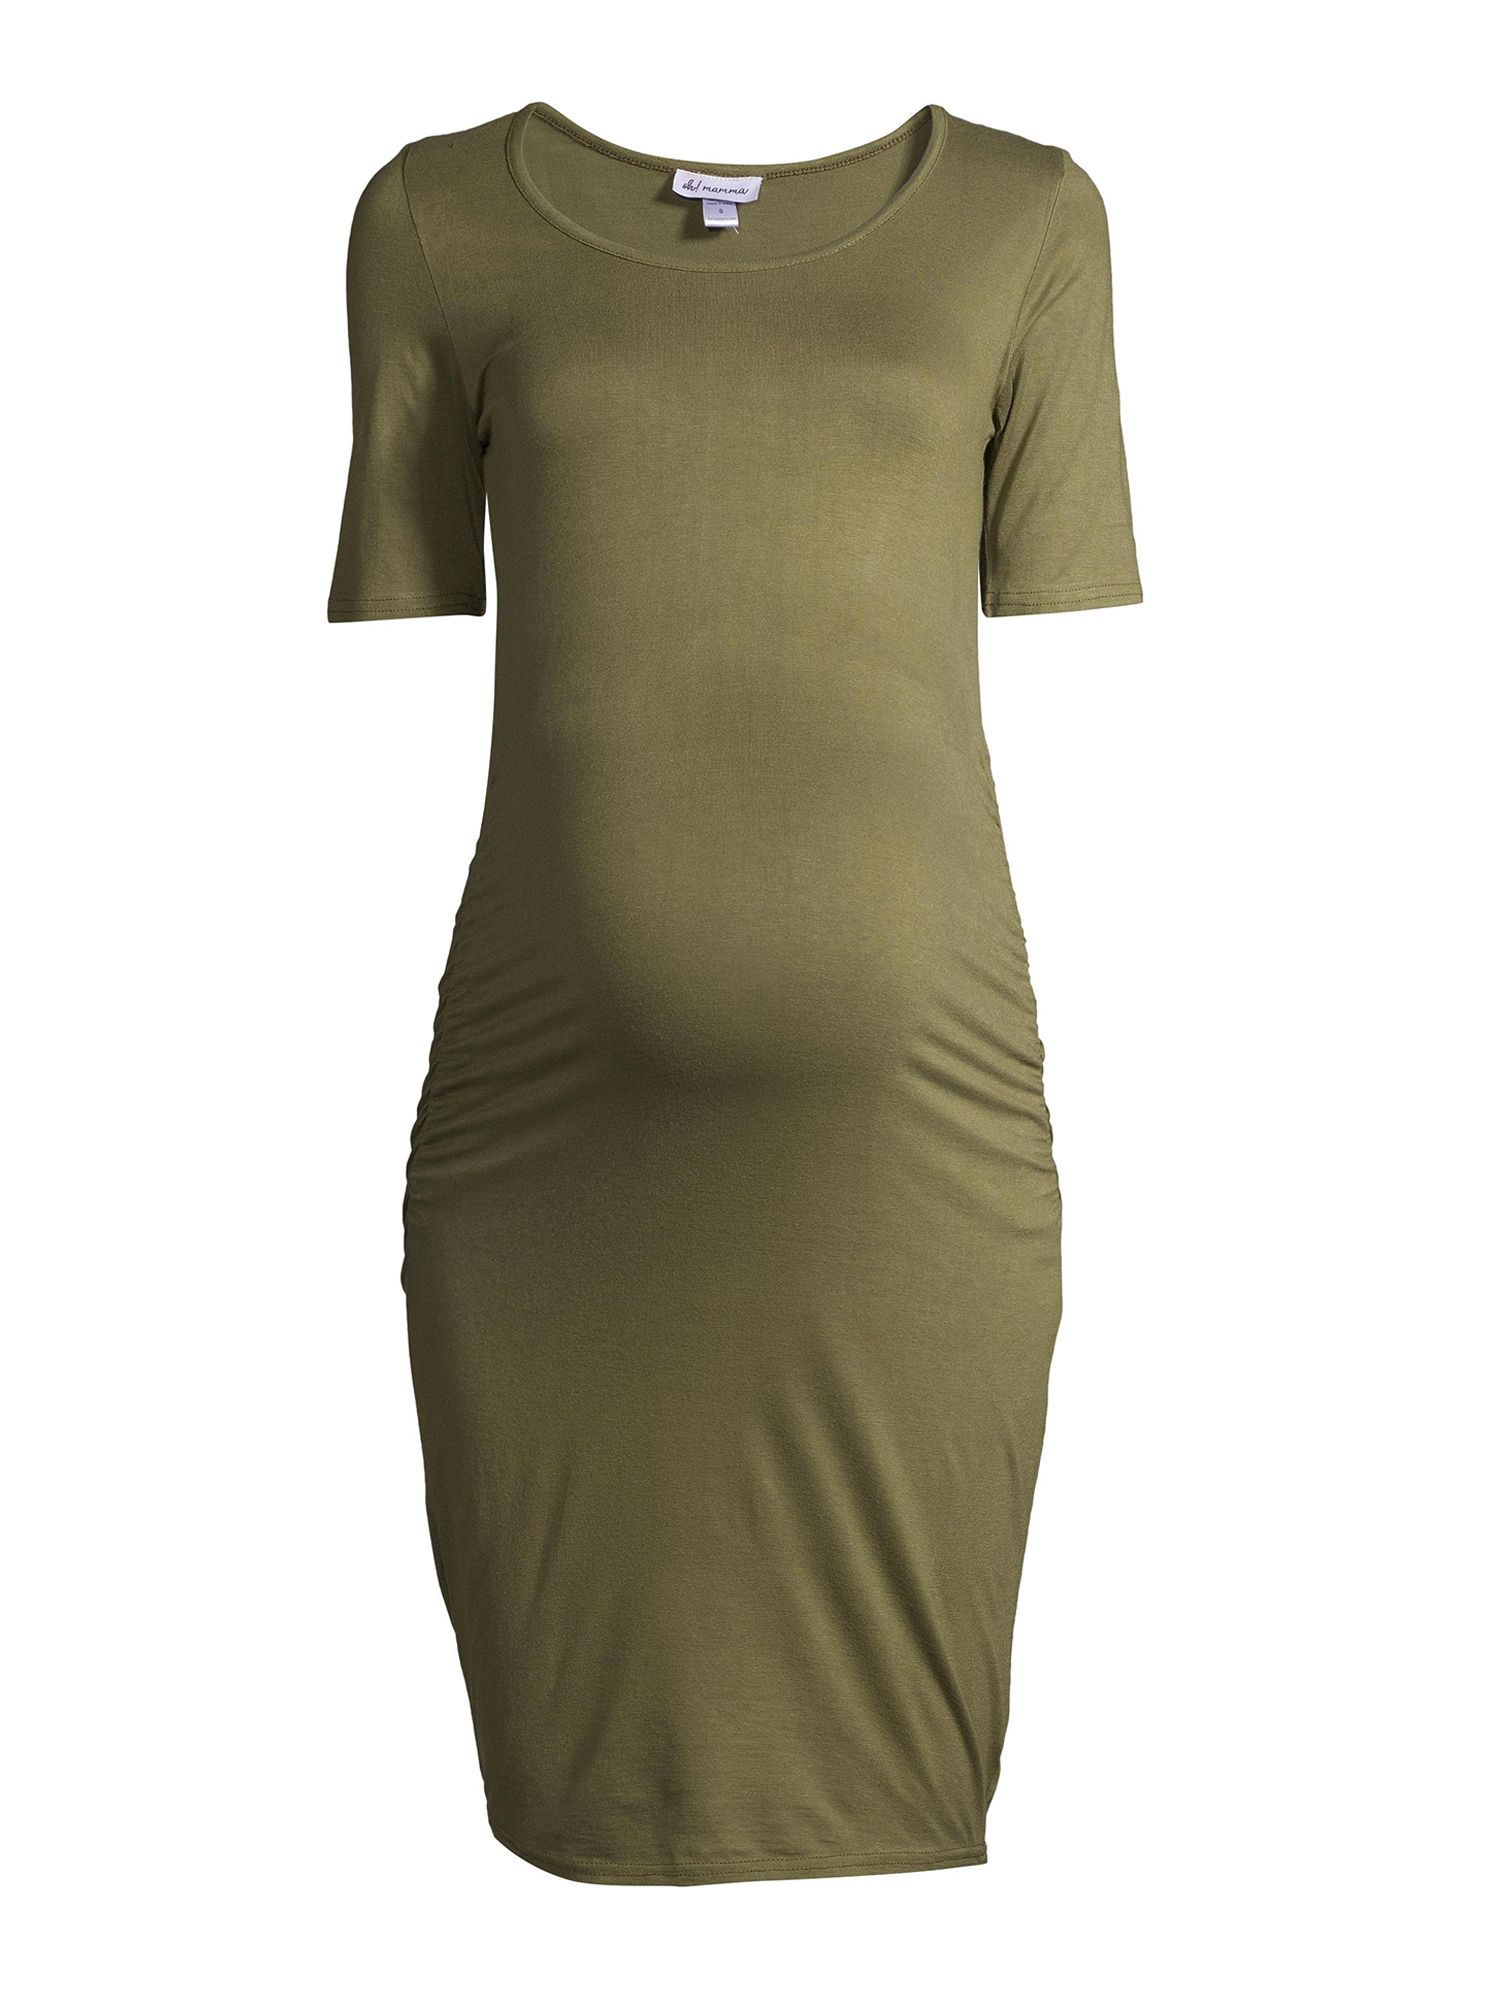 Maternity Oh Mamma Short Sleeve Scoop Neck Knit Dress Available In Plus Sizes Ad Short Paid Sleeve Maternity Short Dresses Dresses Street Style [ 2000 x 1500 Pixel ]